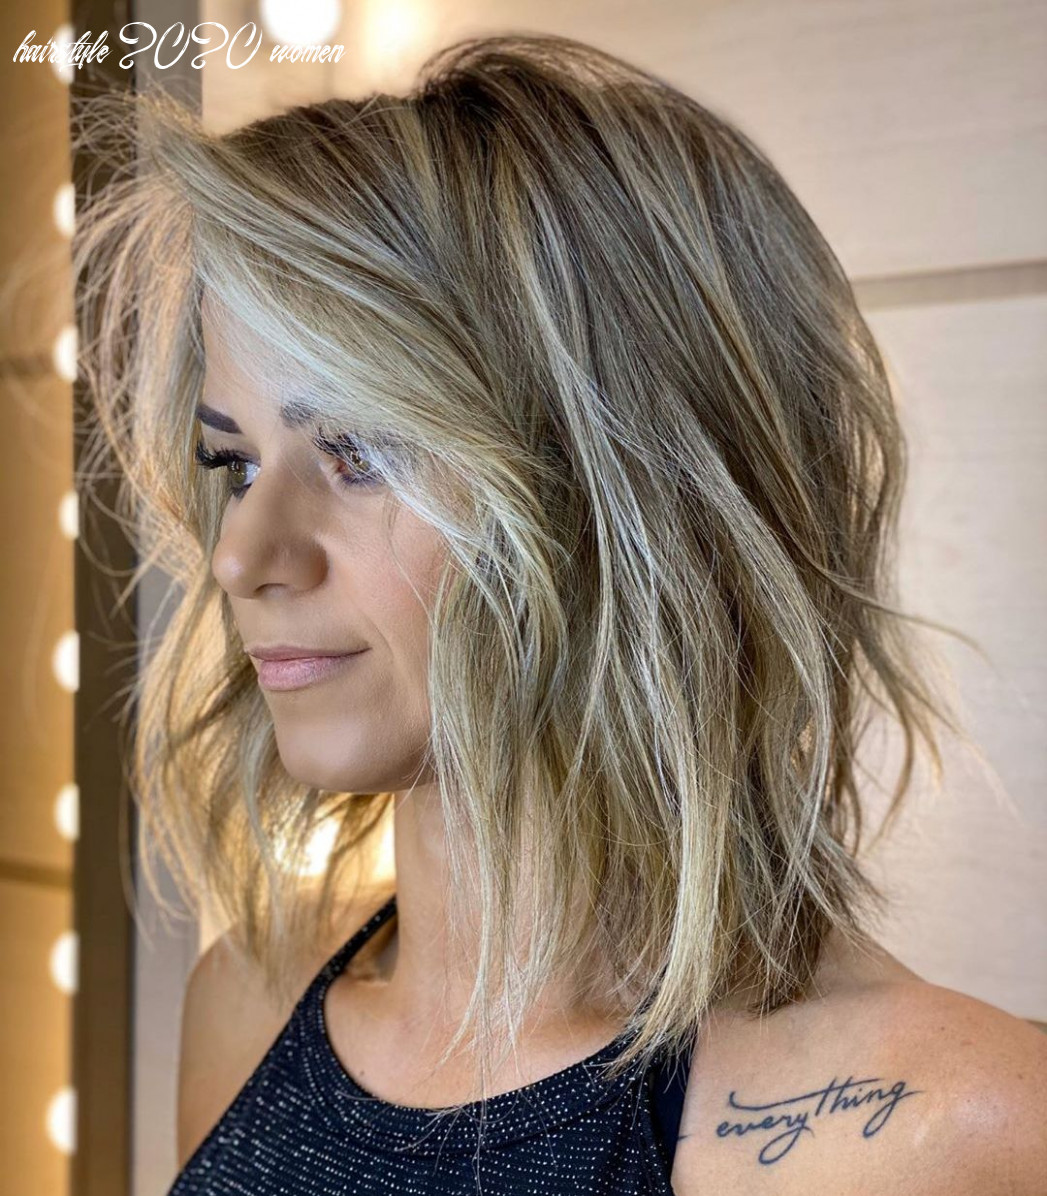 9 newest haircut ideas and haircut trends for 9 hair adviser hairstyle 2020 women